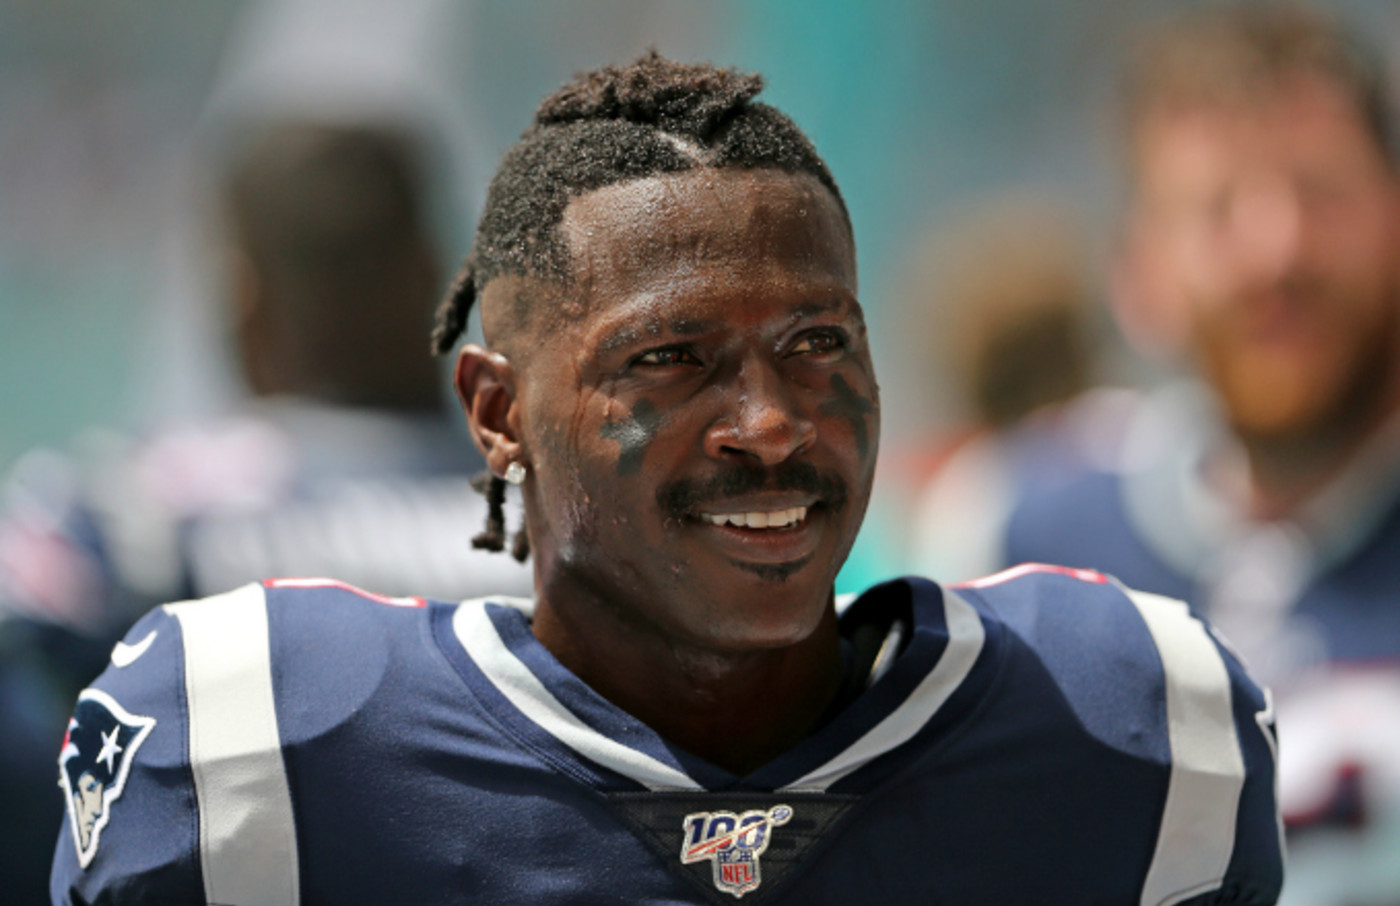 Antonio Brown smiles before the start of game against the Miami Dolphins